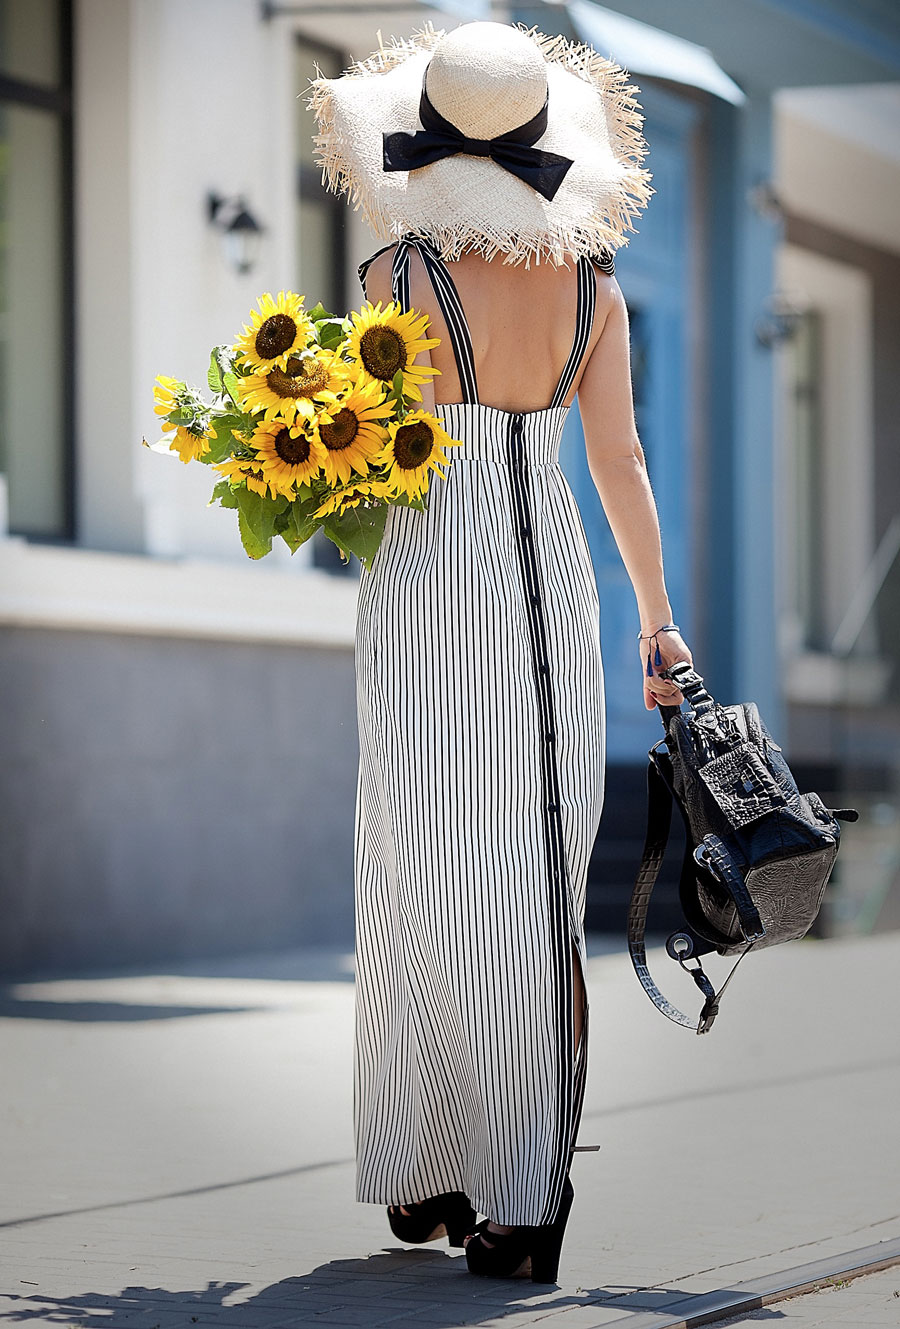 striped summer dress, asos straw hat, pic of the best summer outfit ideas, striped summer dresses, sunflowers in street style,